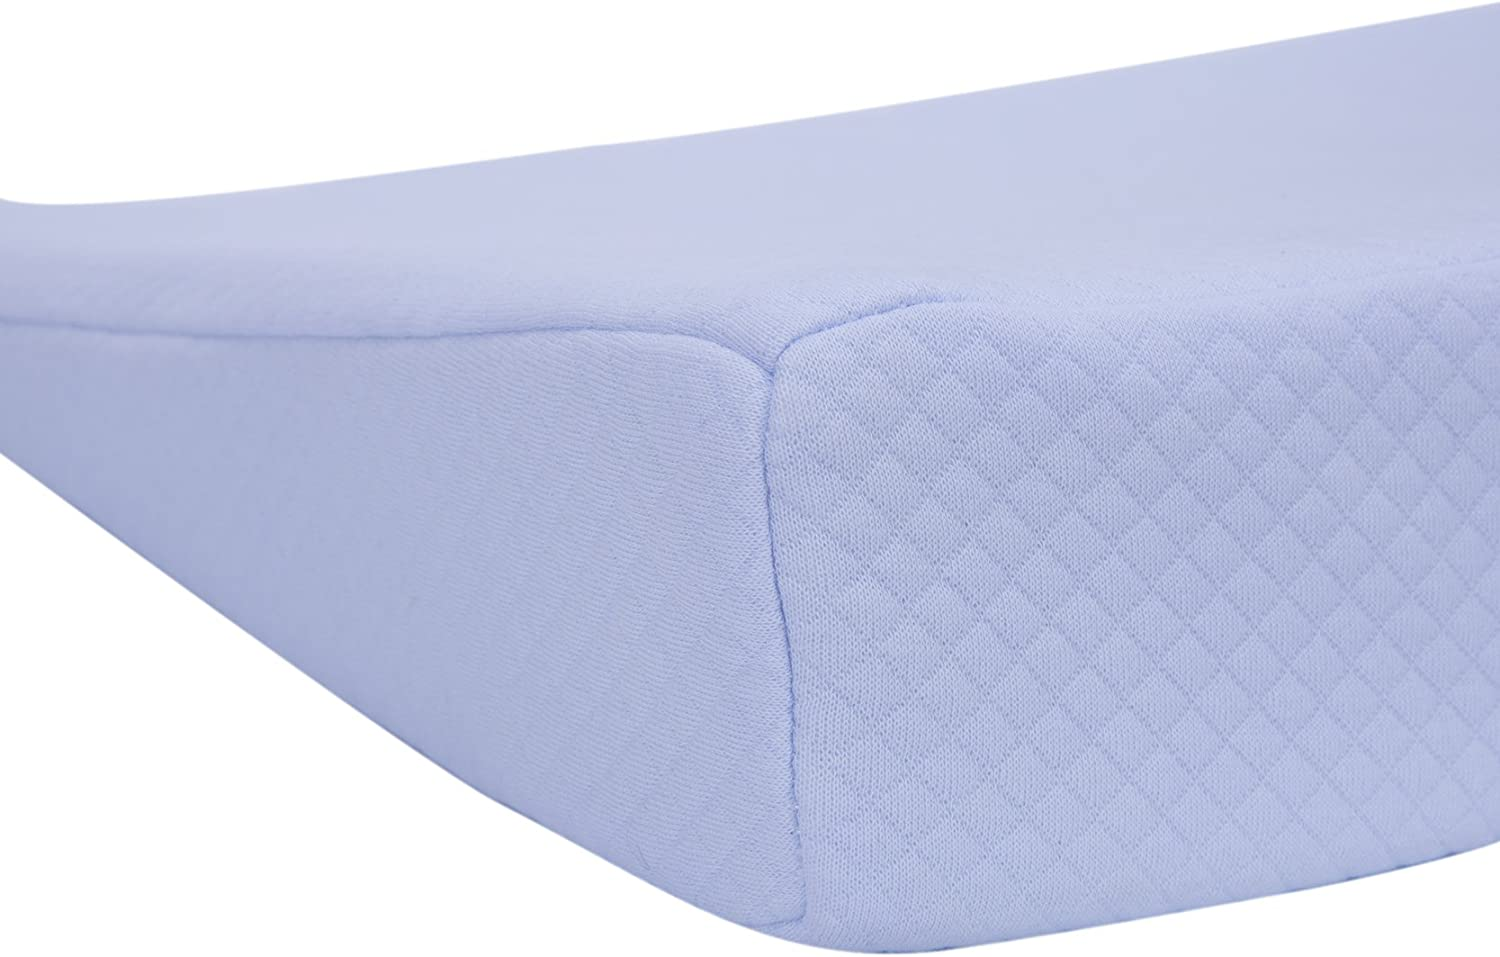 Aurelius Baby Sleep Pillow Wedge Reflux Pillow Bed Wedge Anti Reflux and Colic Congestion with Memory Foam Fit for Universal Bed//Pram//Crib//Cot//Bassinet//Mattress